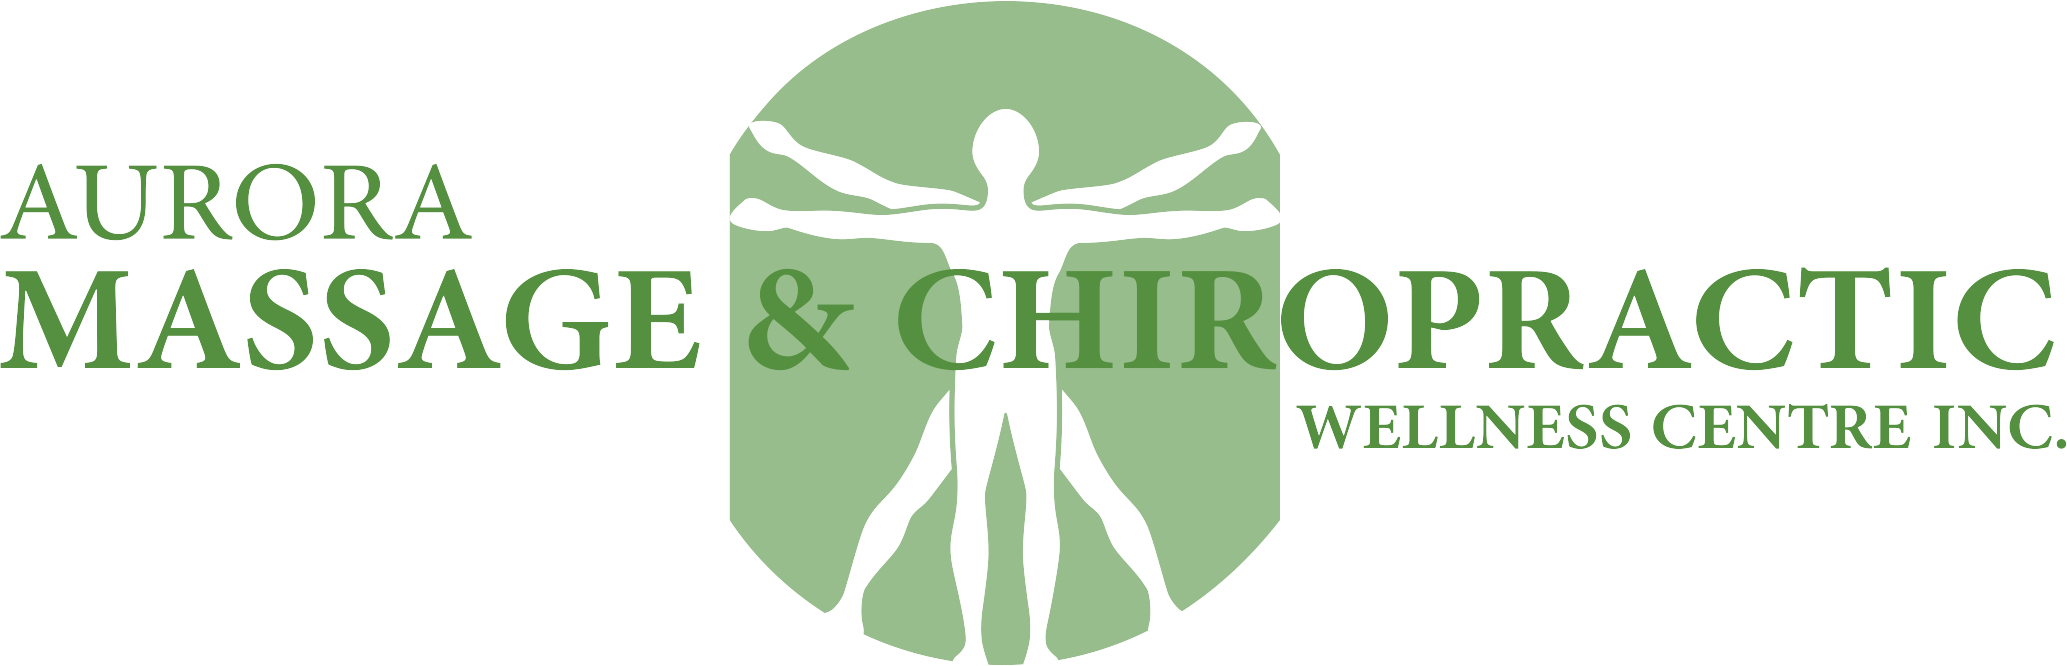 Aurora Massage and Chiropractic Wellness Centre Inc.